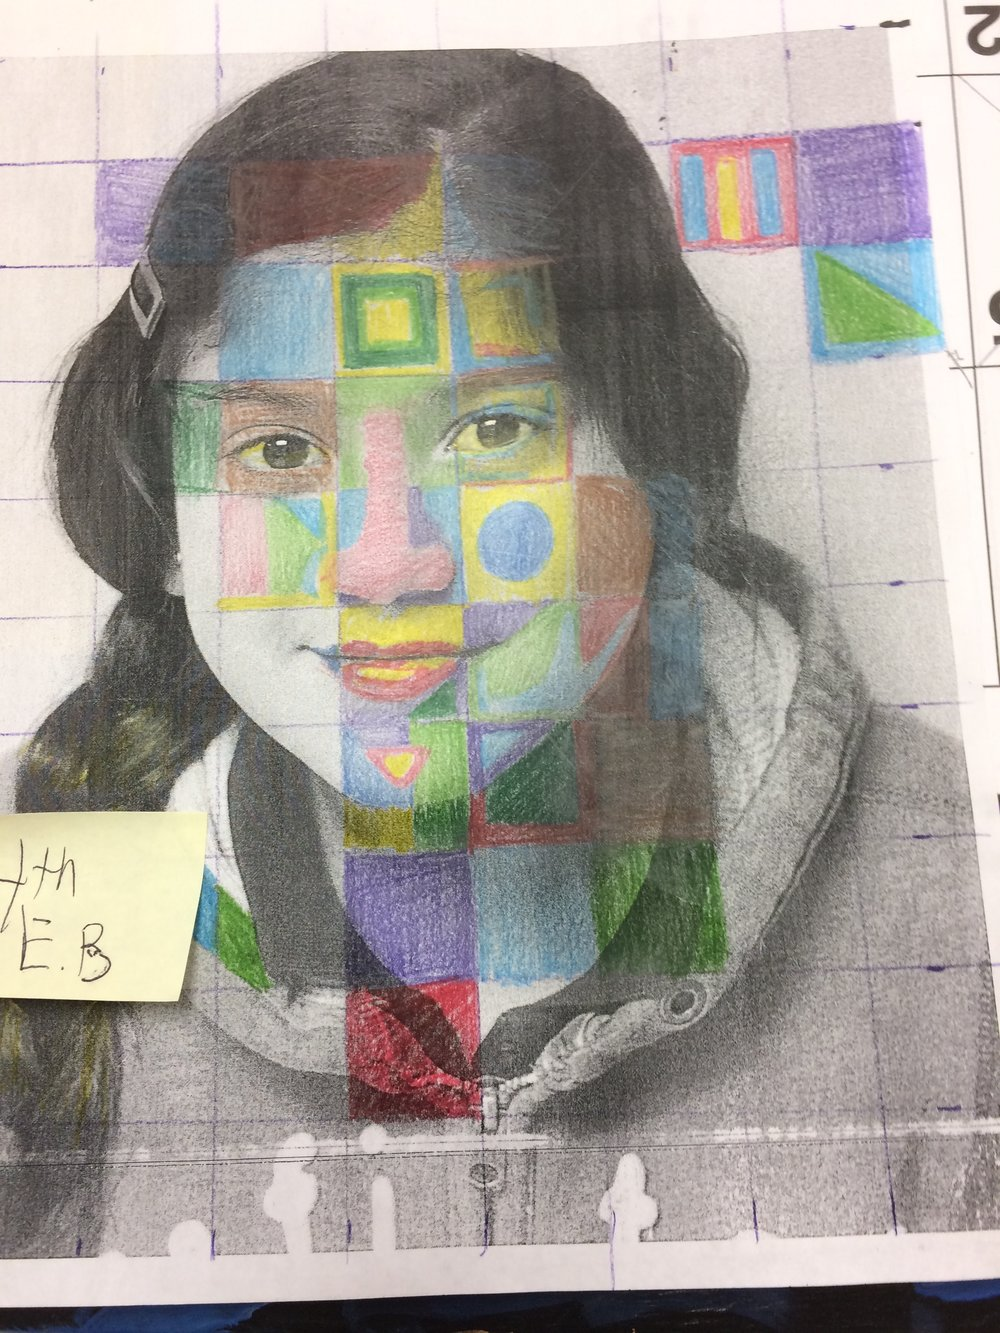 Fourth and Fifth Grade portrait works focus students on analyzing and seeing oneself as an artist.